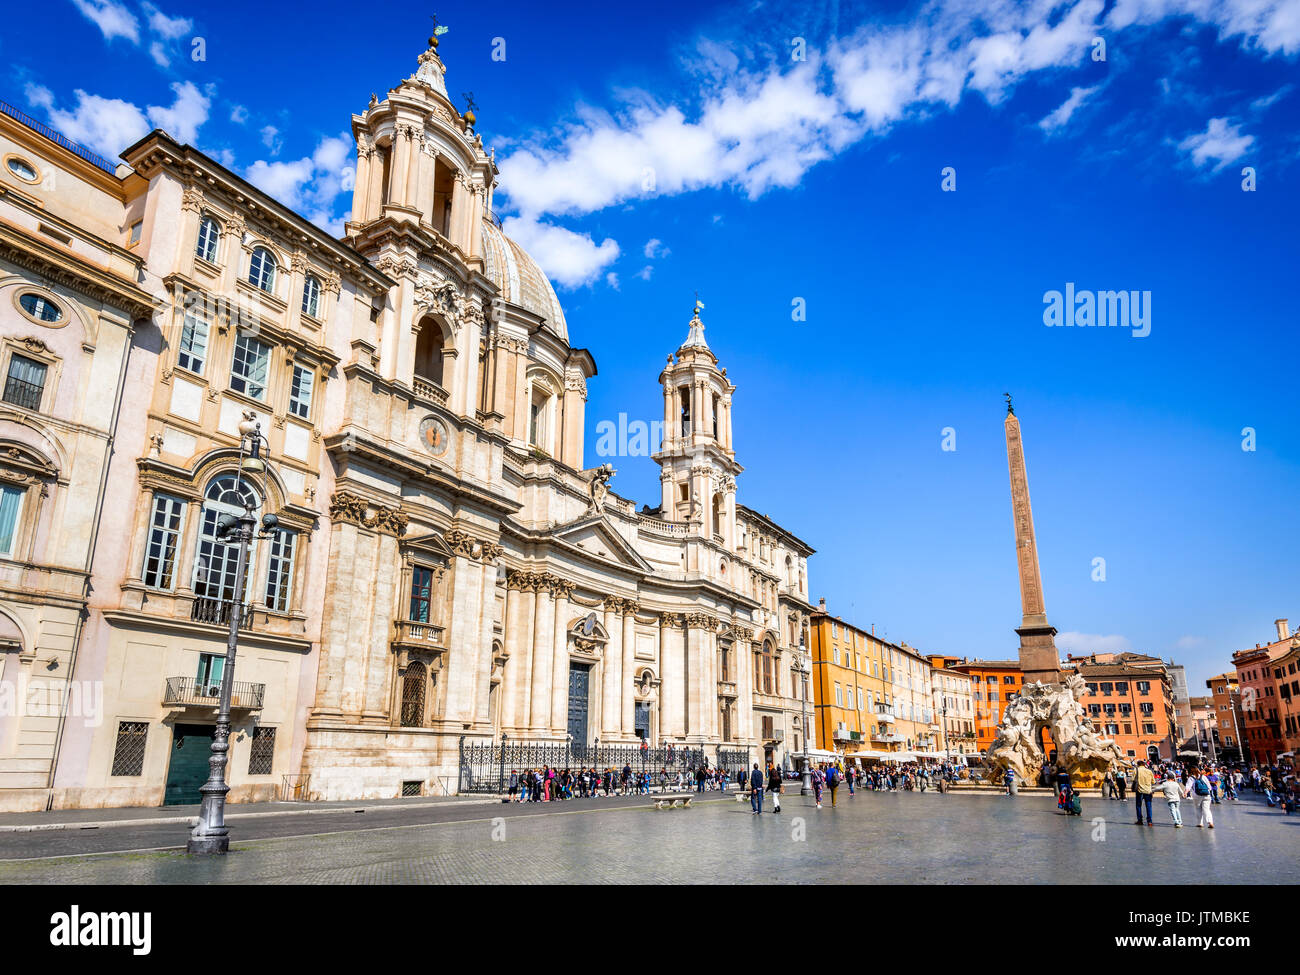 ROME, ITALY - 13 APRIL 2017: Piazza Navona, Rome, Italy with the famous Egyptian obelisk italian Rennaisance culture. - Stock Image